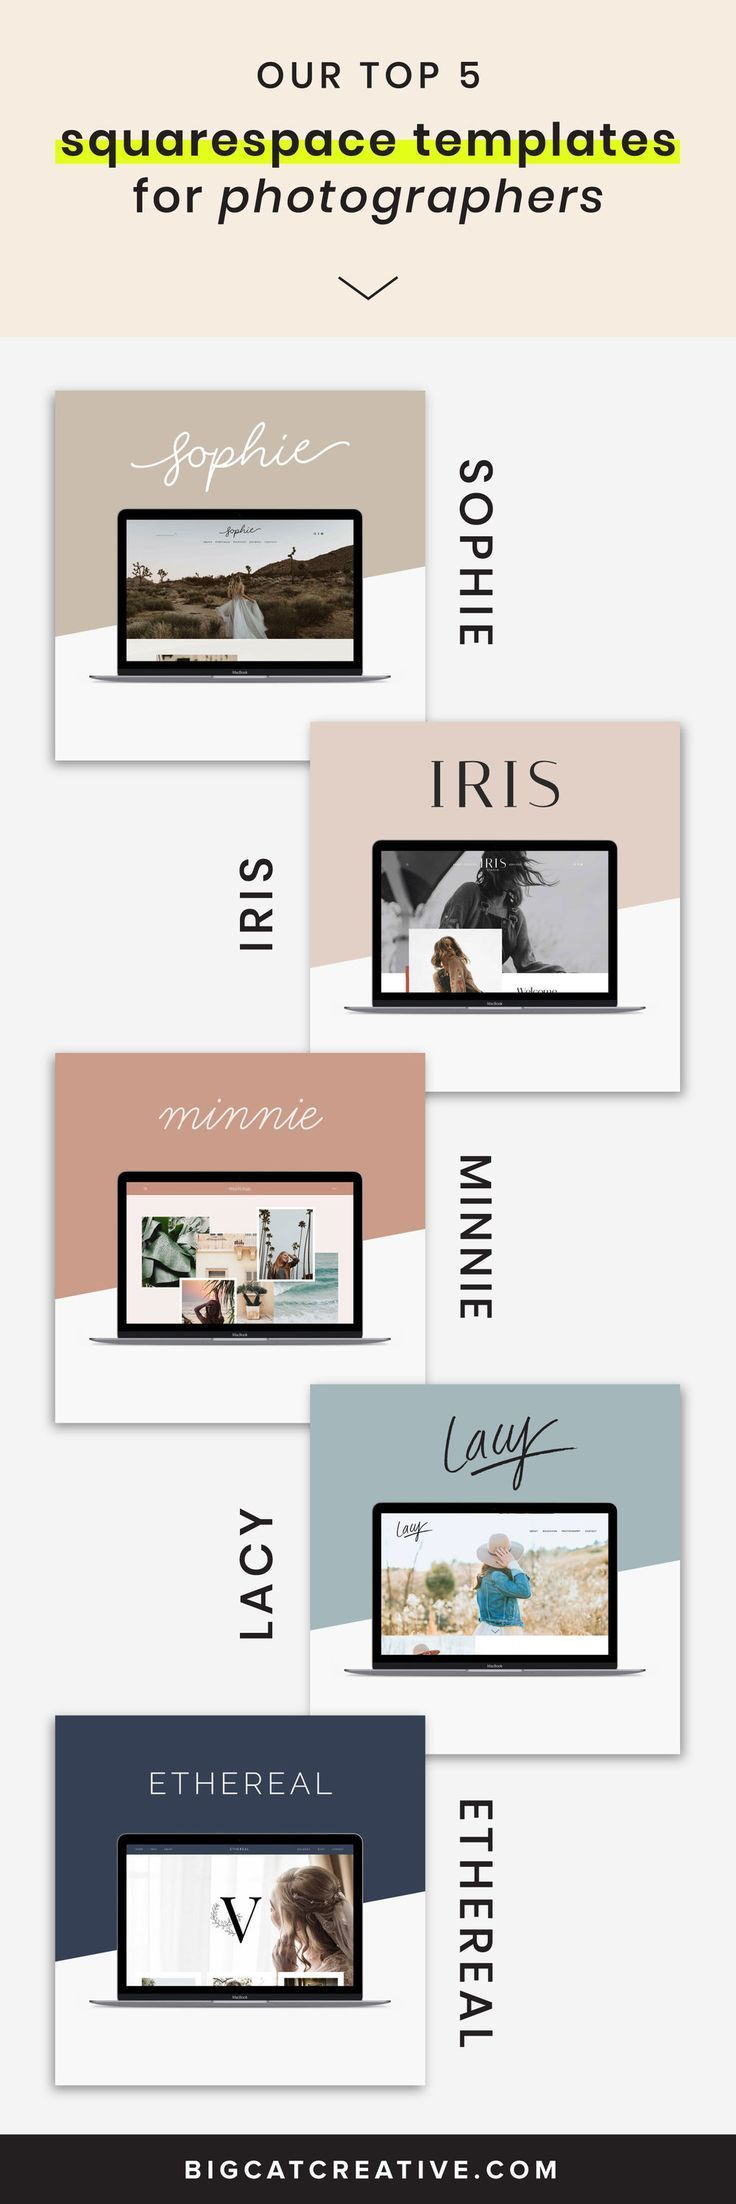 Our 5 Best Squarespace Templates For Photographers Big Cat Creative Squarespace Templates Squarespace Templates Best Squarespace Template Small Business Web Design